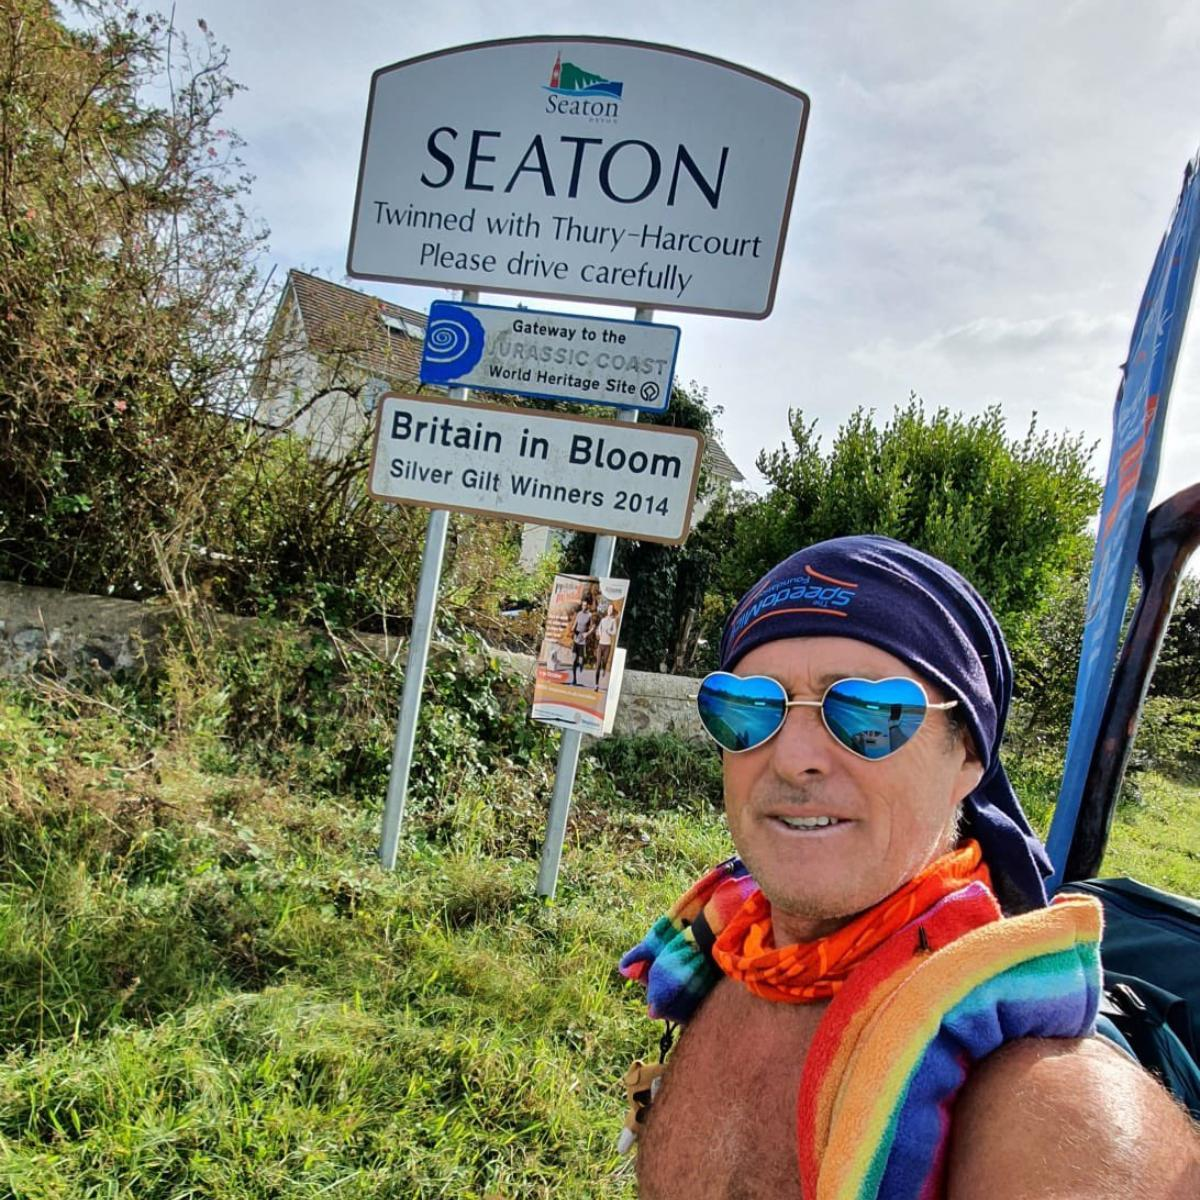 Mick Cullen, known as Speedo Mick, will seek to give away up to £250,000 from his own foundation during a 2,000 mile, five-month trek across the UK and Ireland